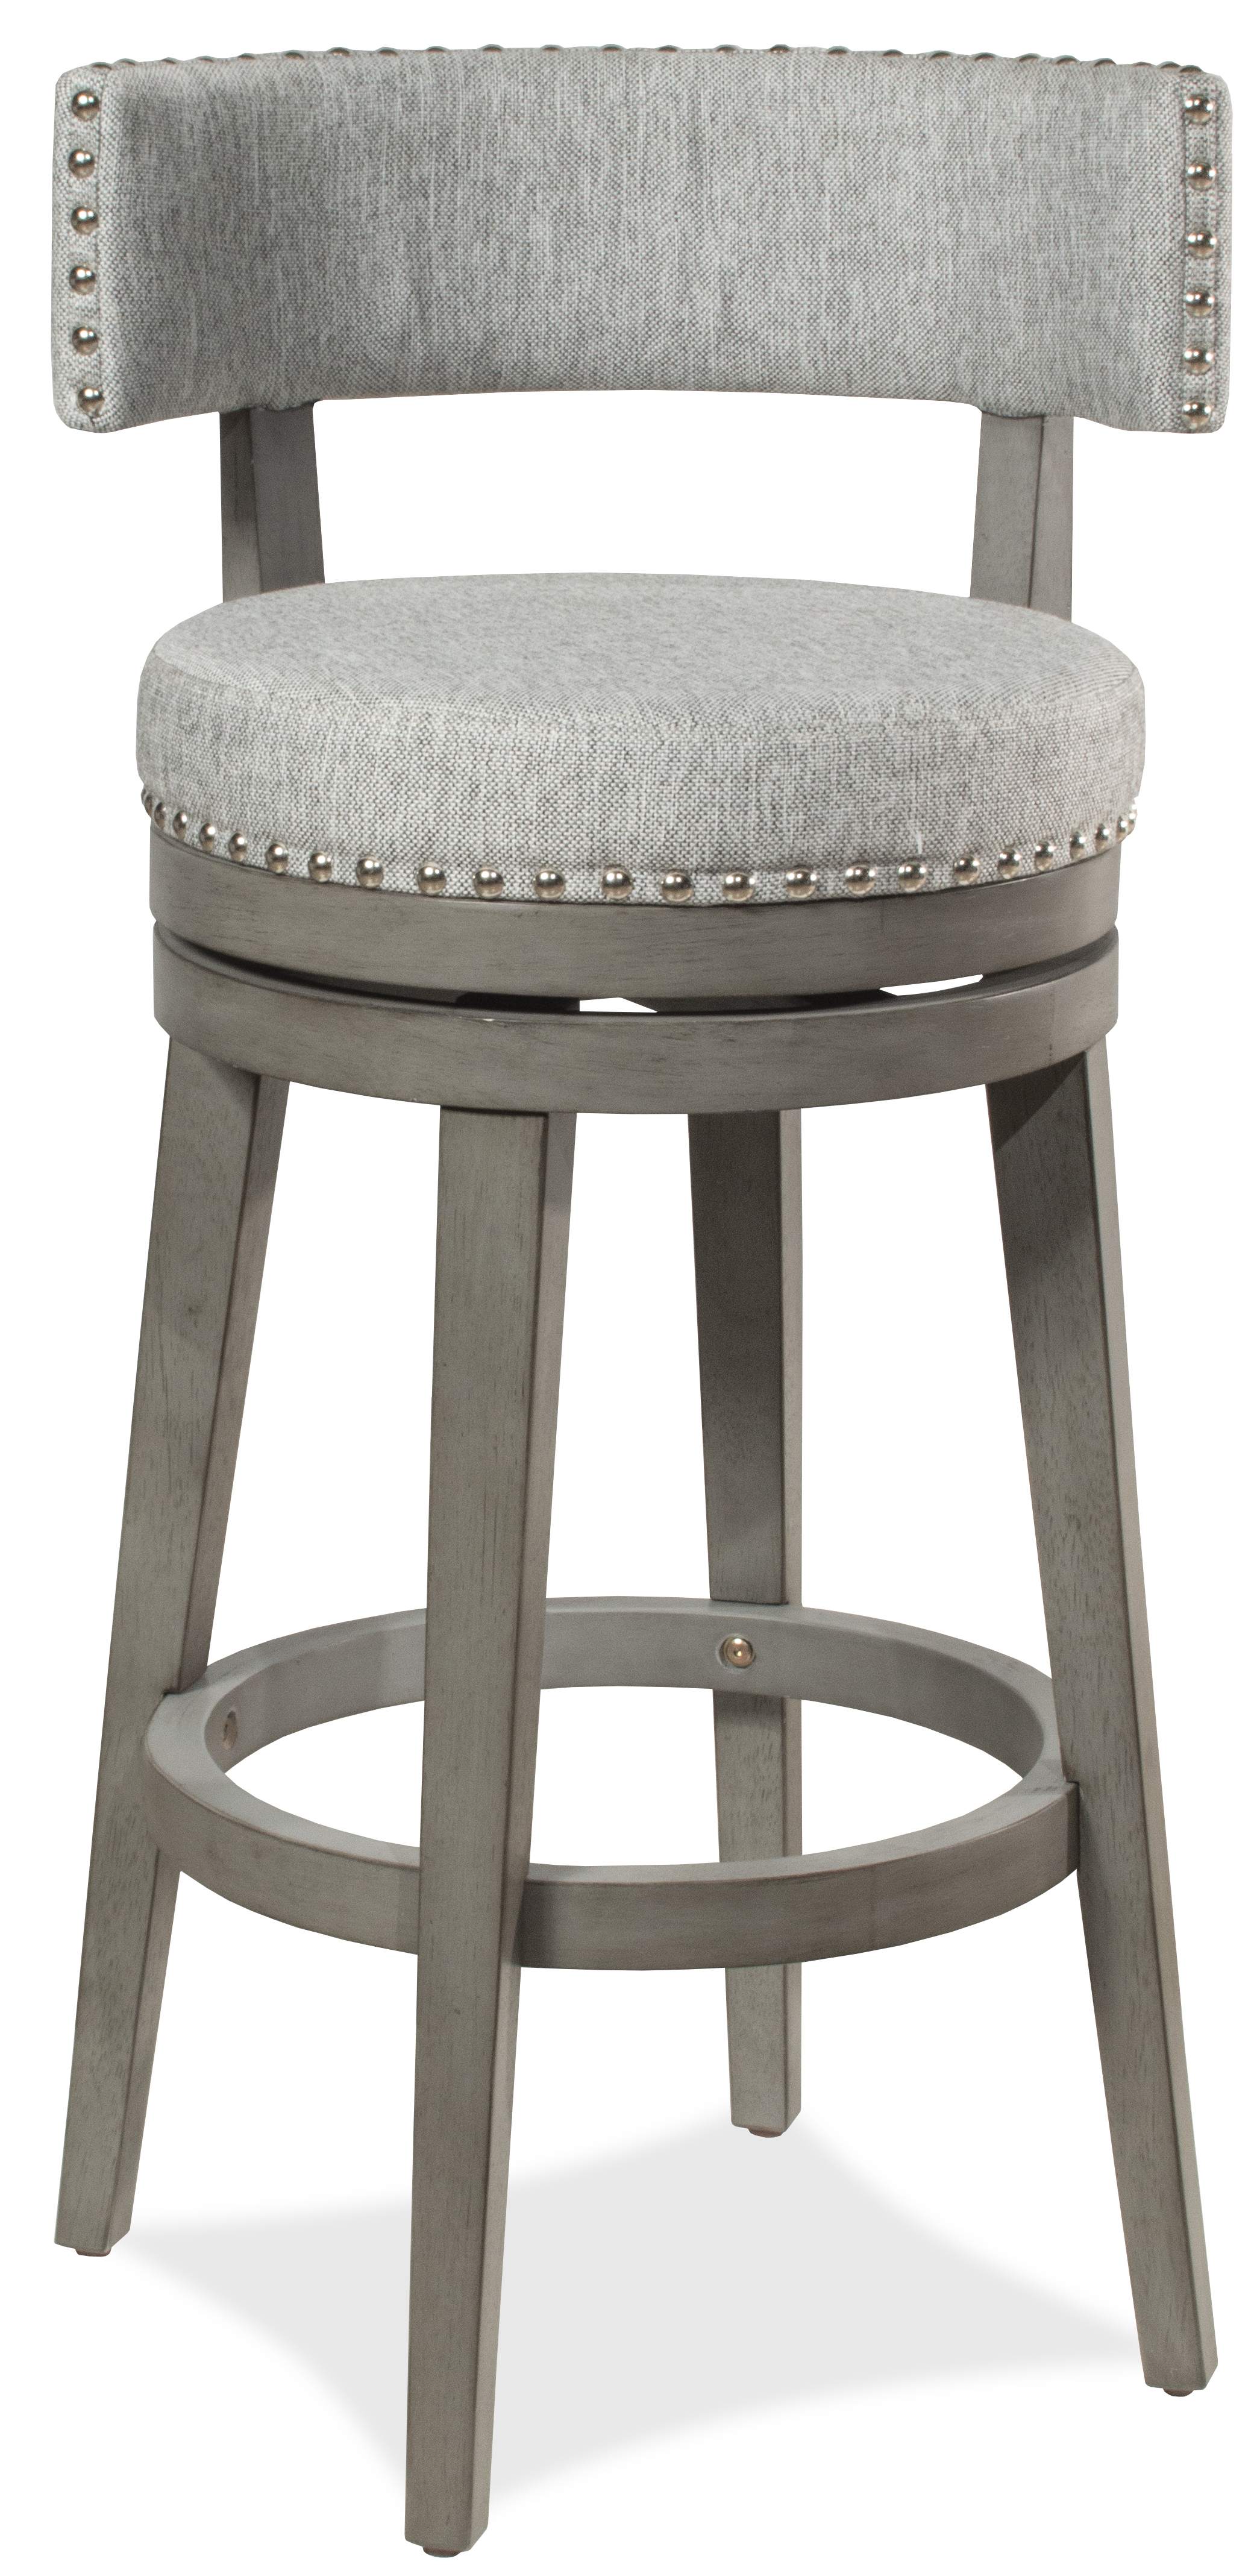 Lawton Swivel Counter Height Stool Antique Gray